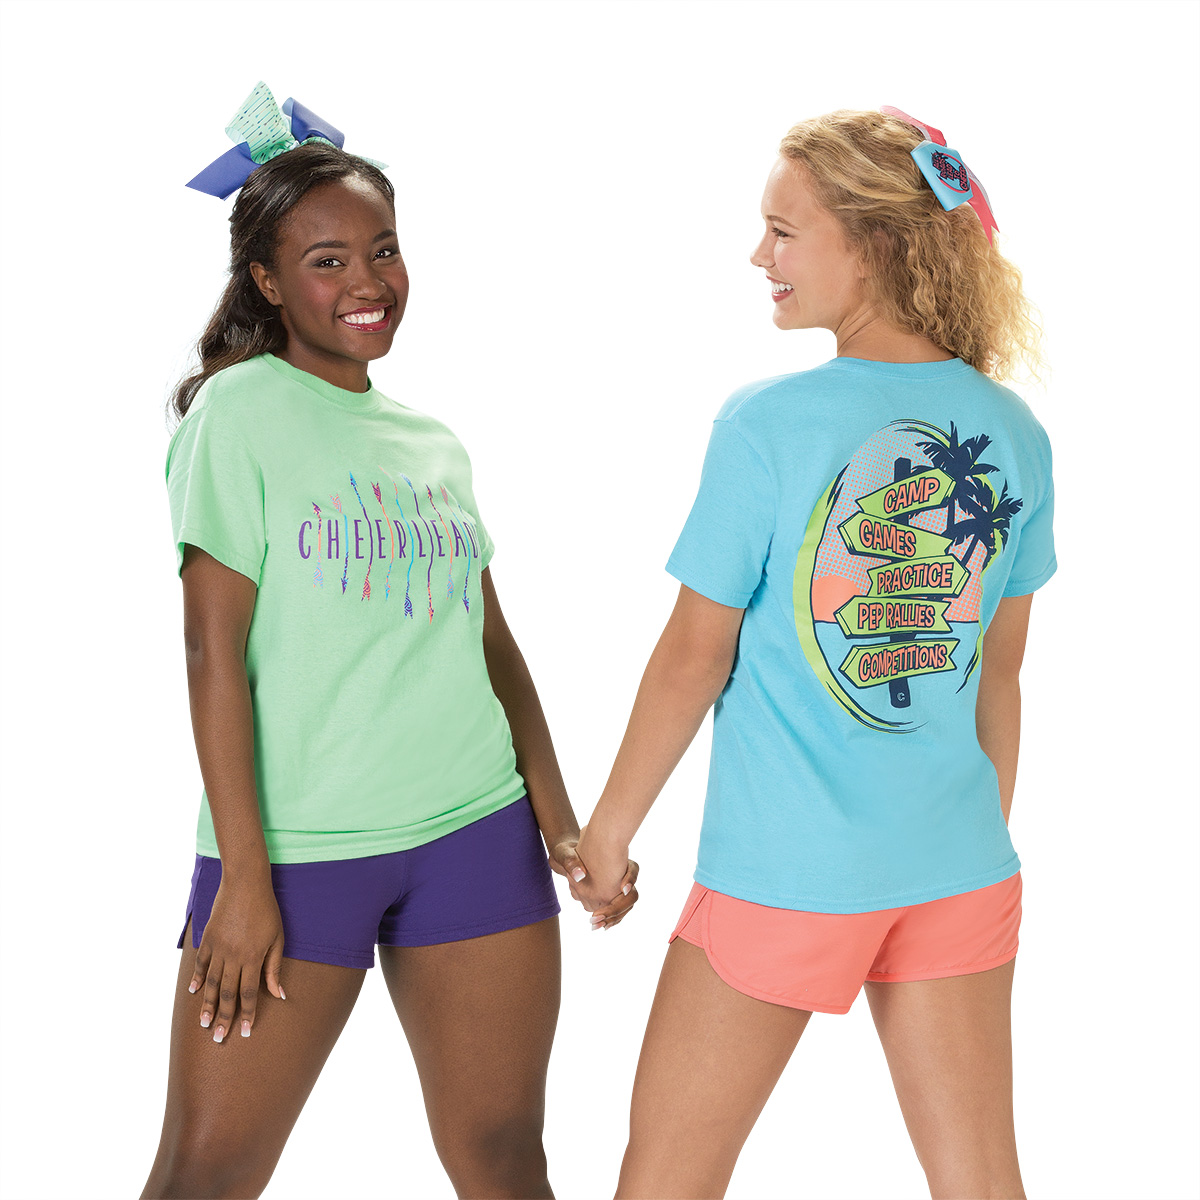 Cheer and Dance Shirts